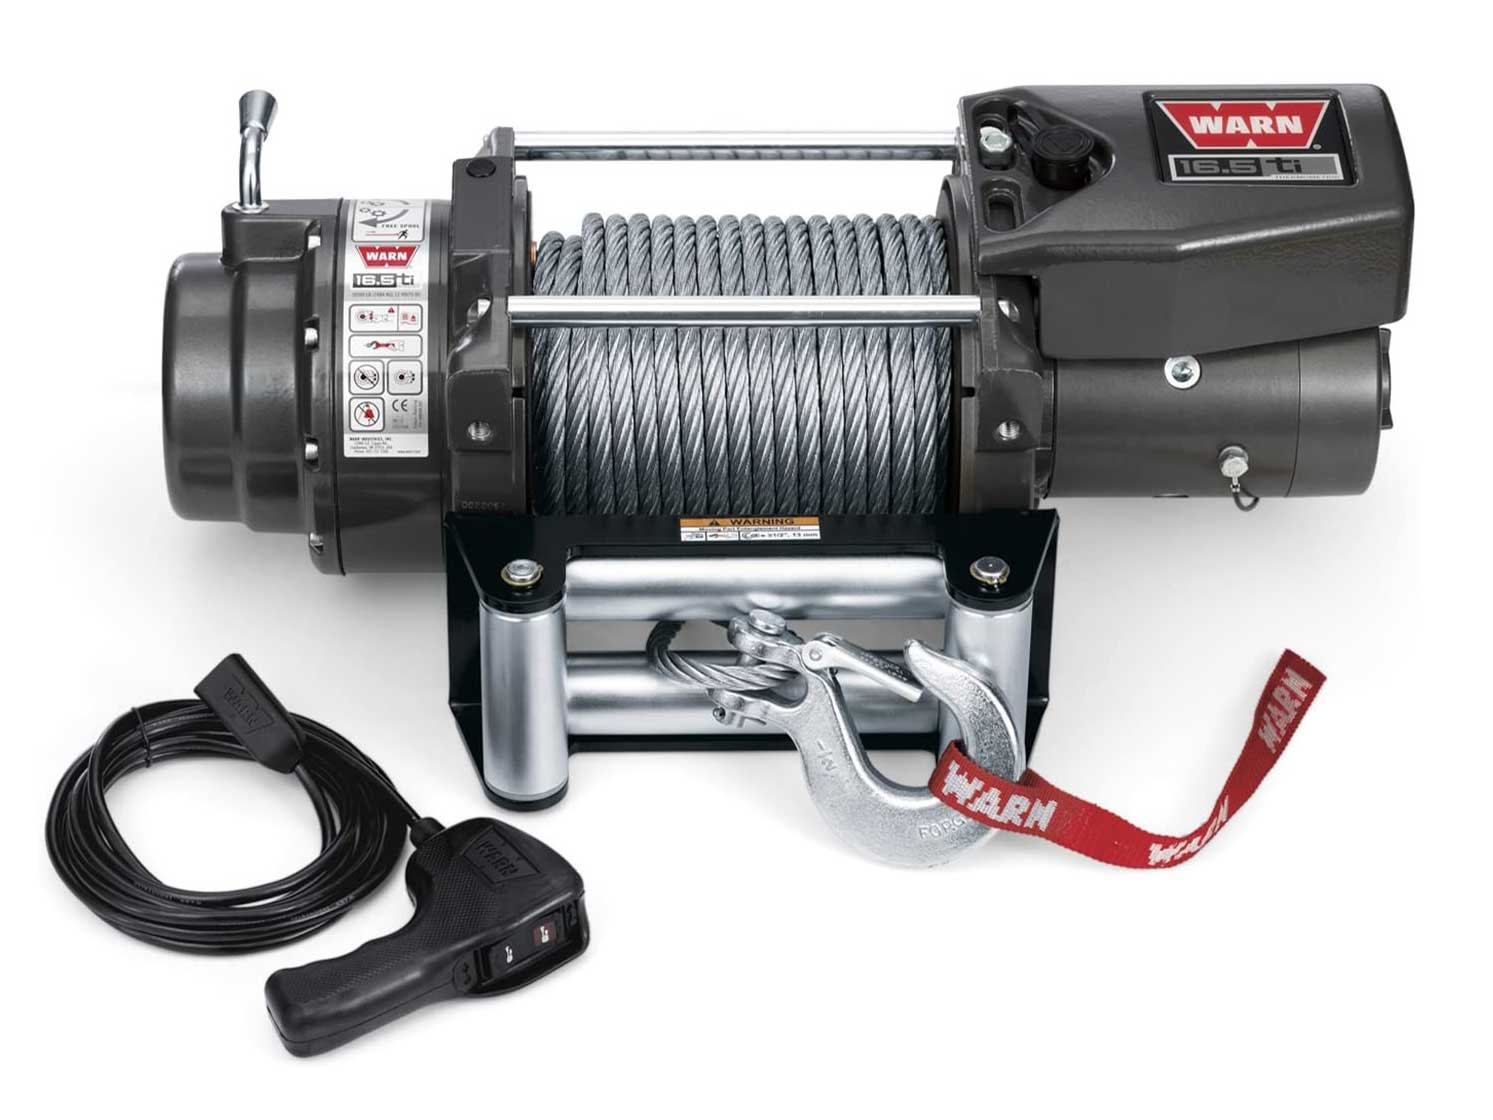 WARN 68801 16.5ti Series Electric 12V Heavyweight Thermometric Winch with Steel Cable Wire Rope: 7/16